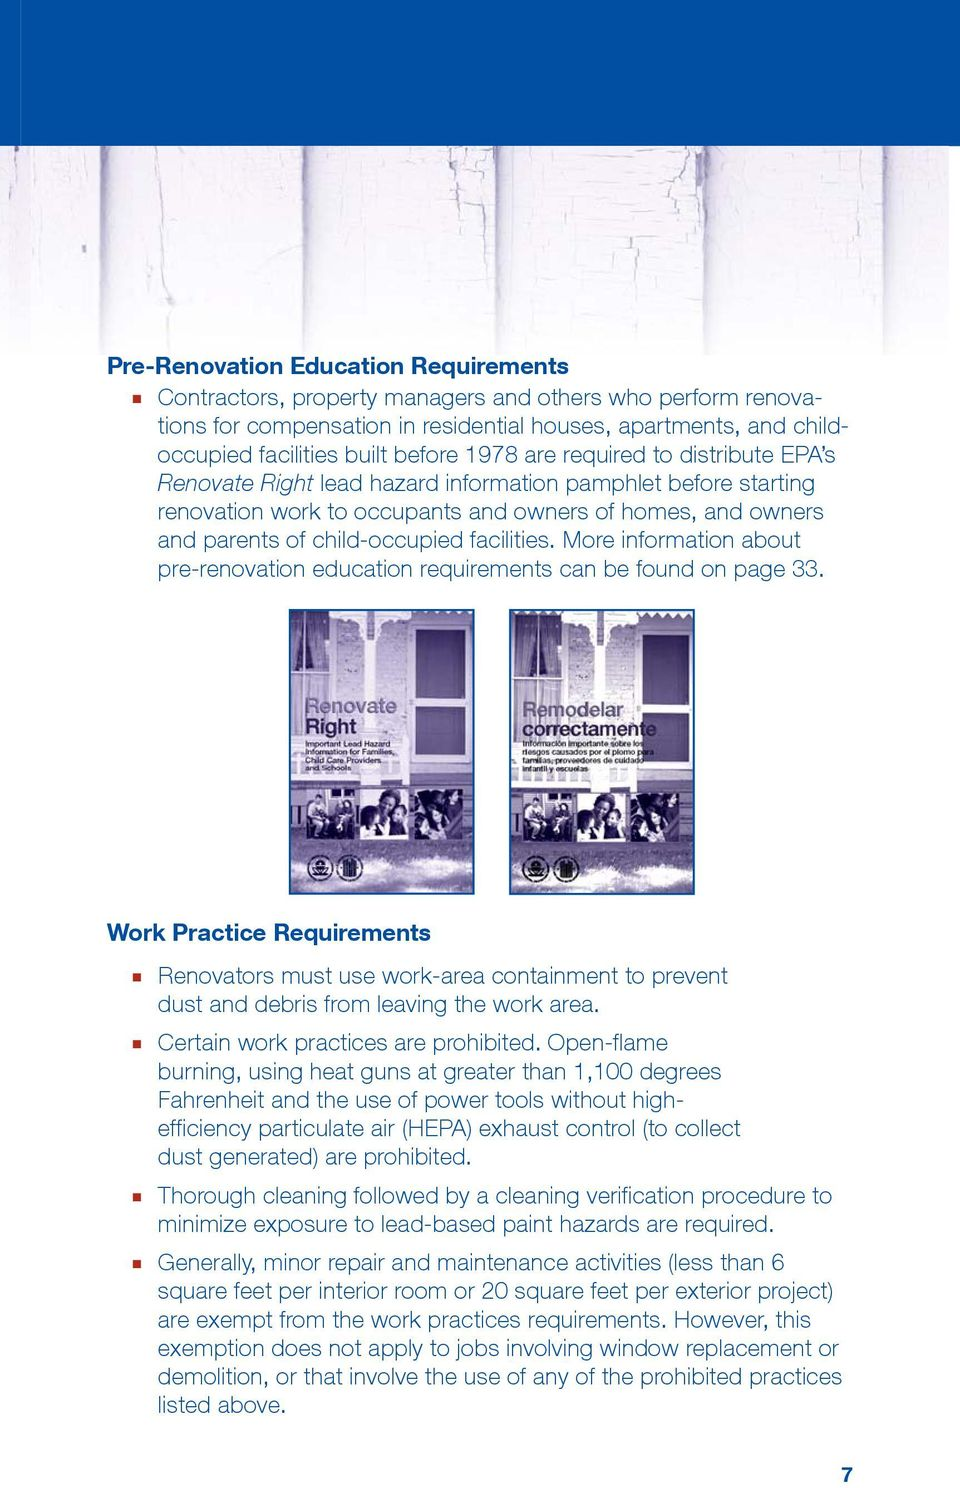 facilities. More information about pre-renovation education requirements can be found on page 33.